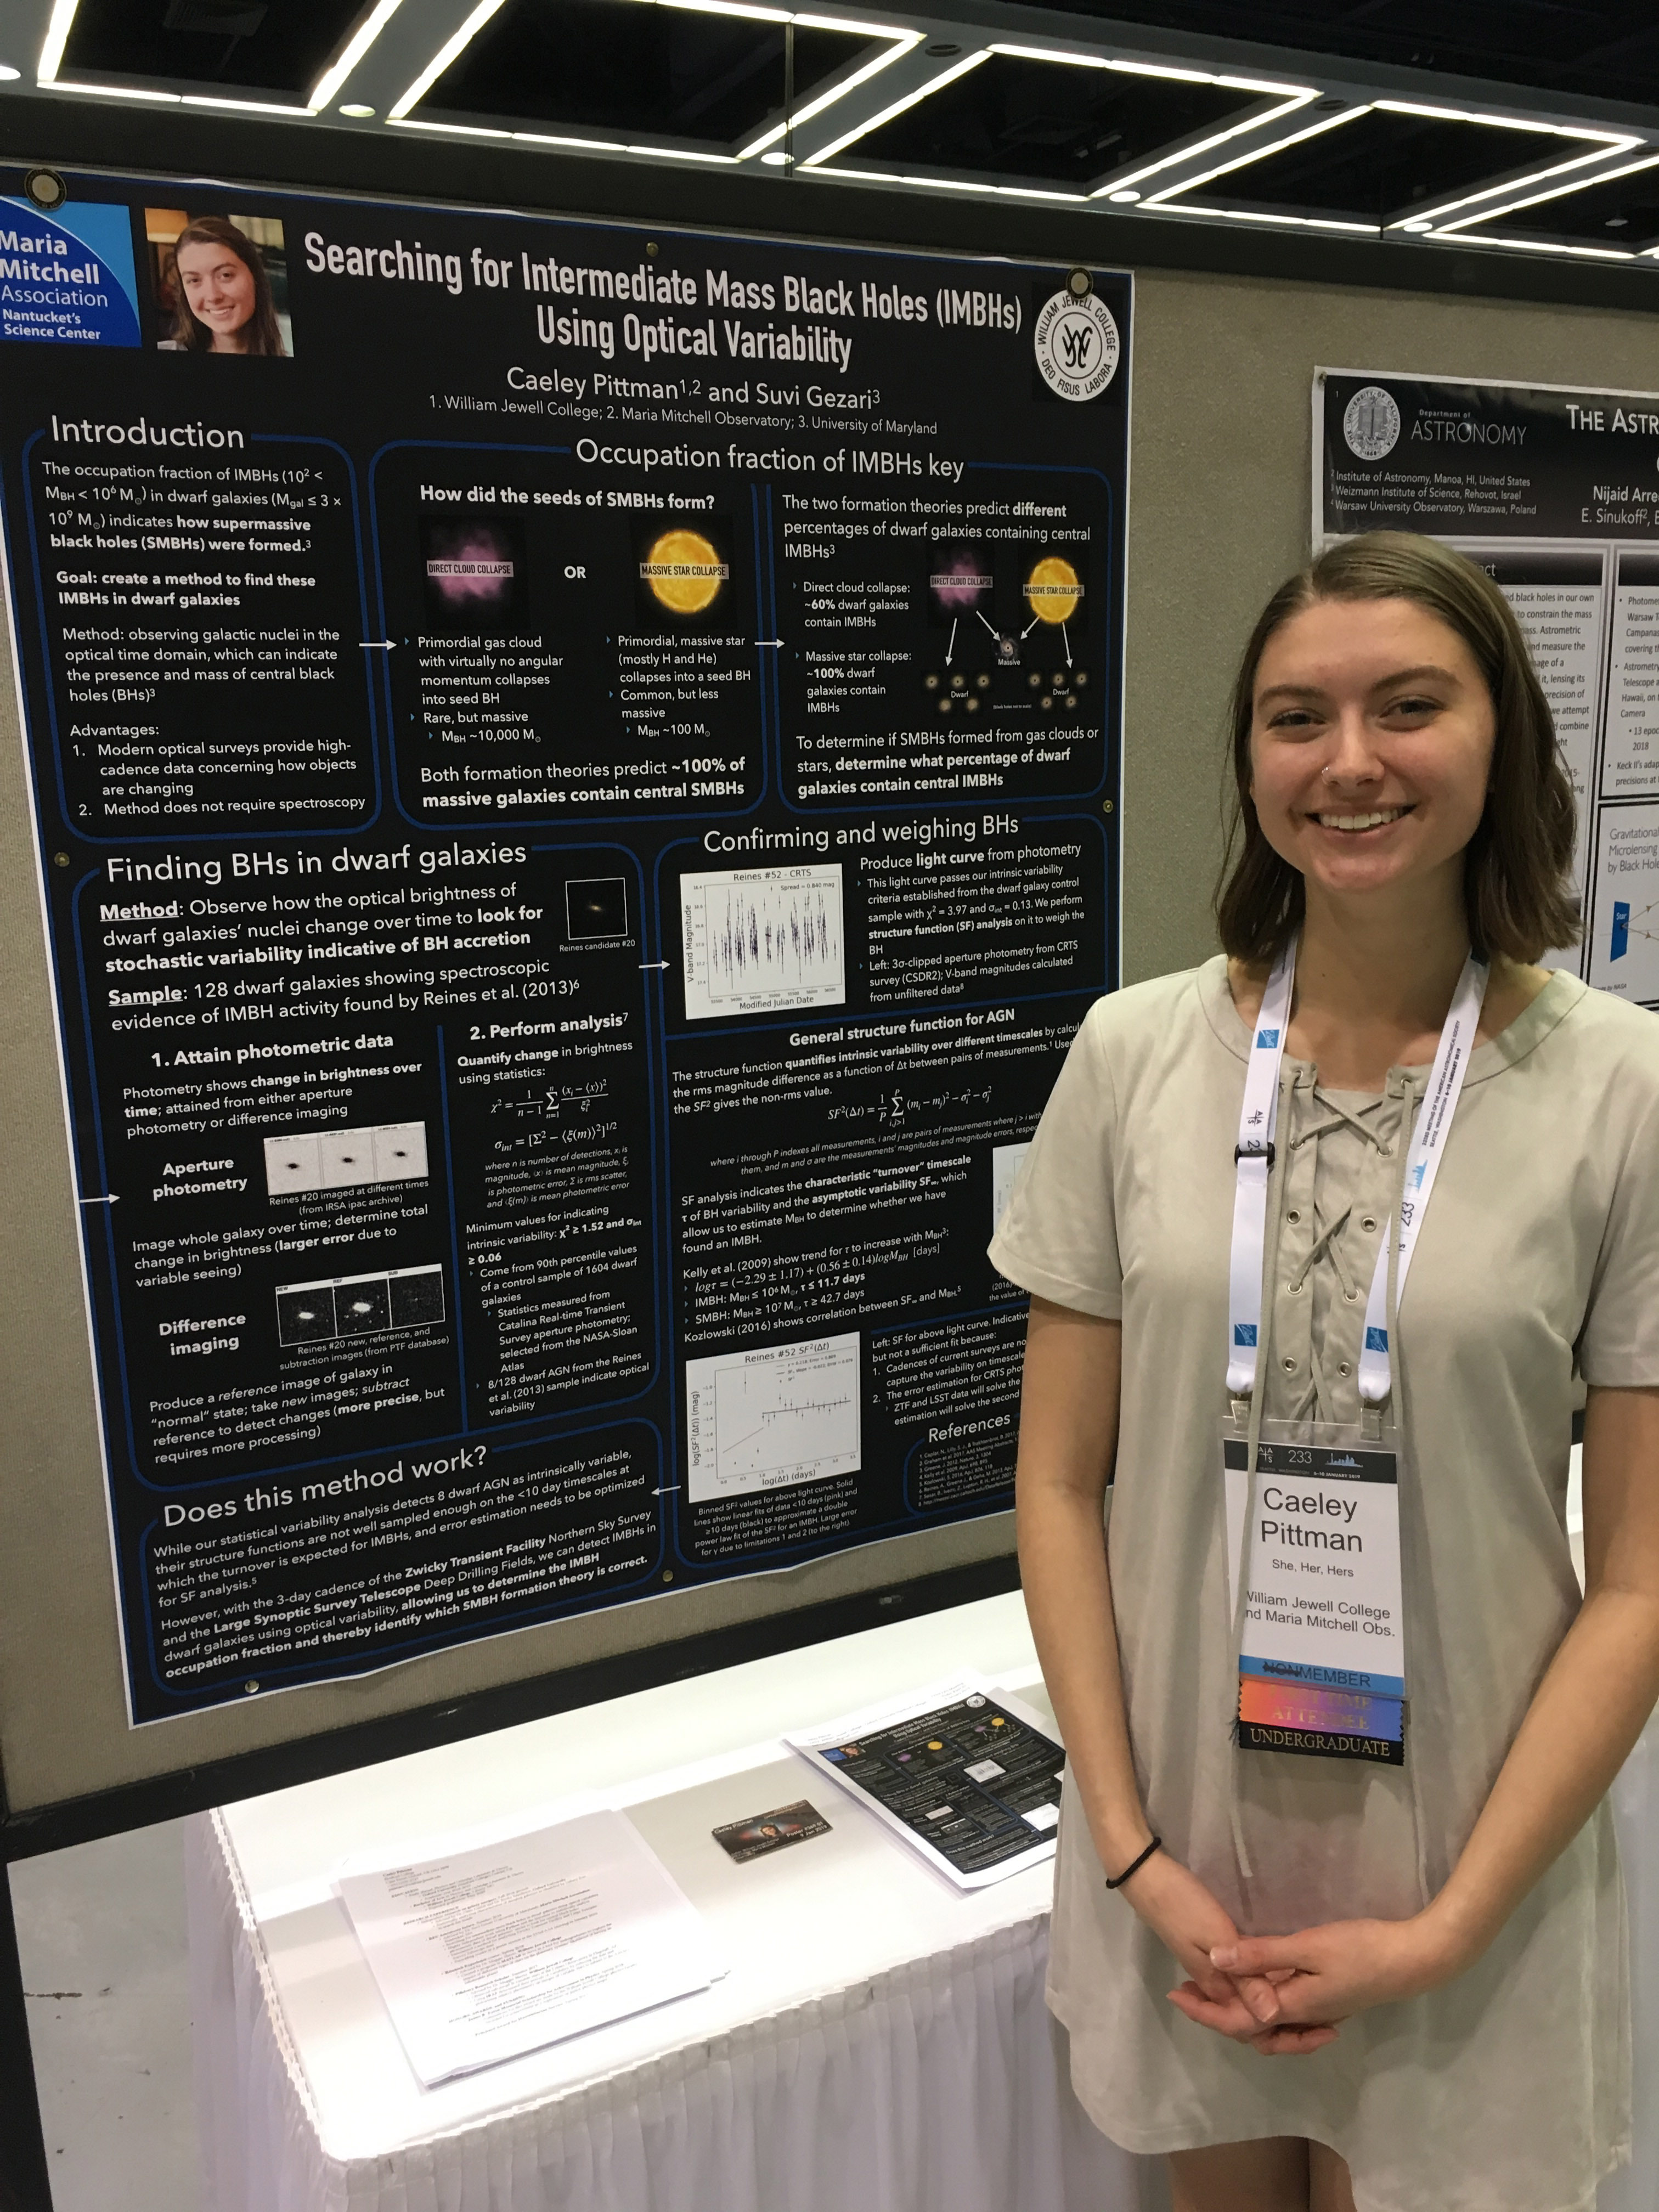 Caeley Pittman and black hole research